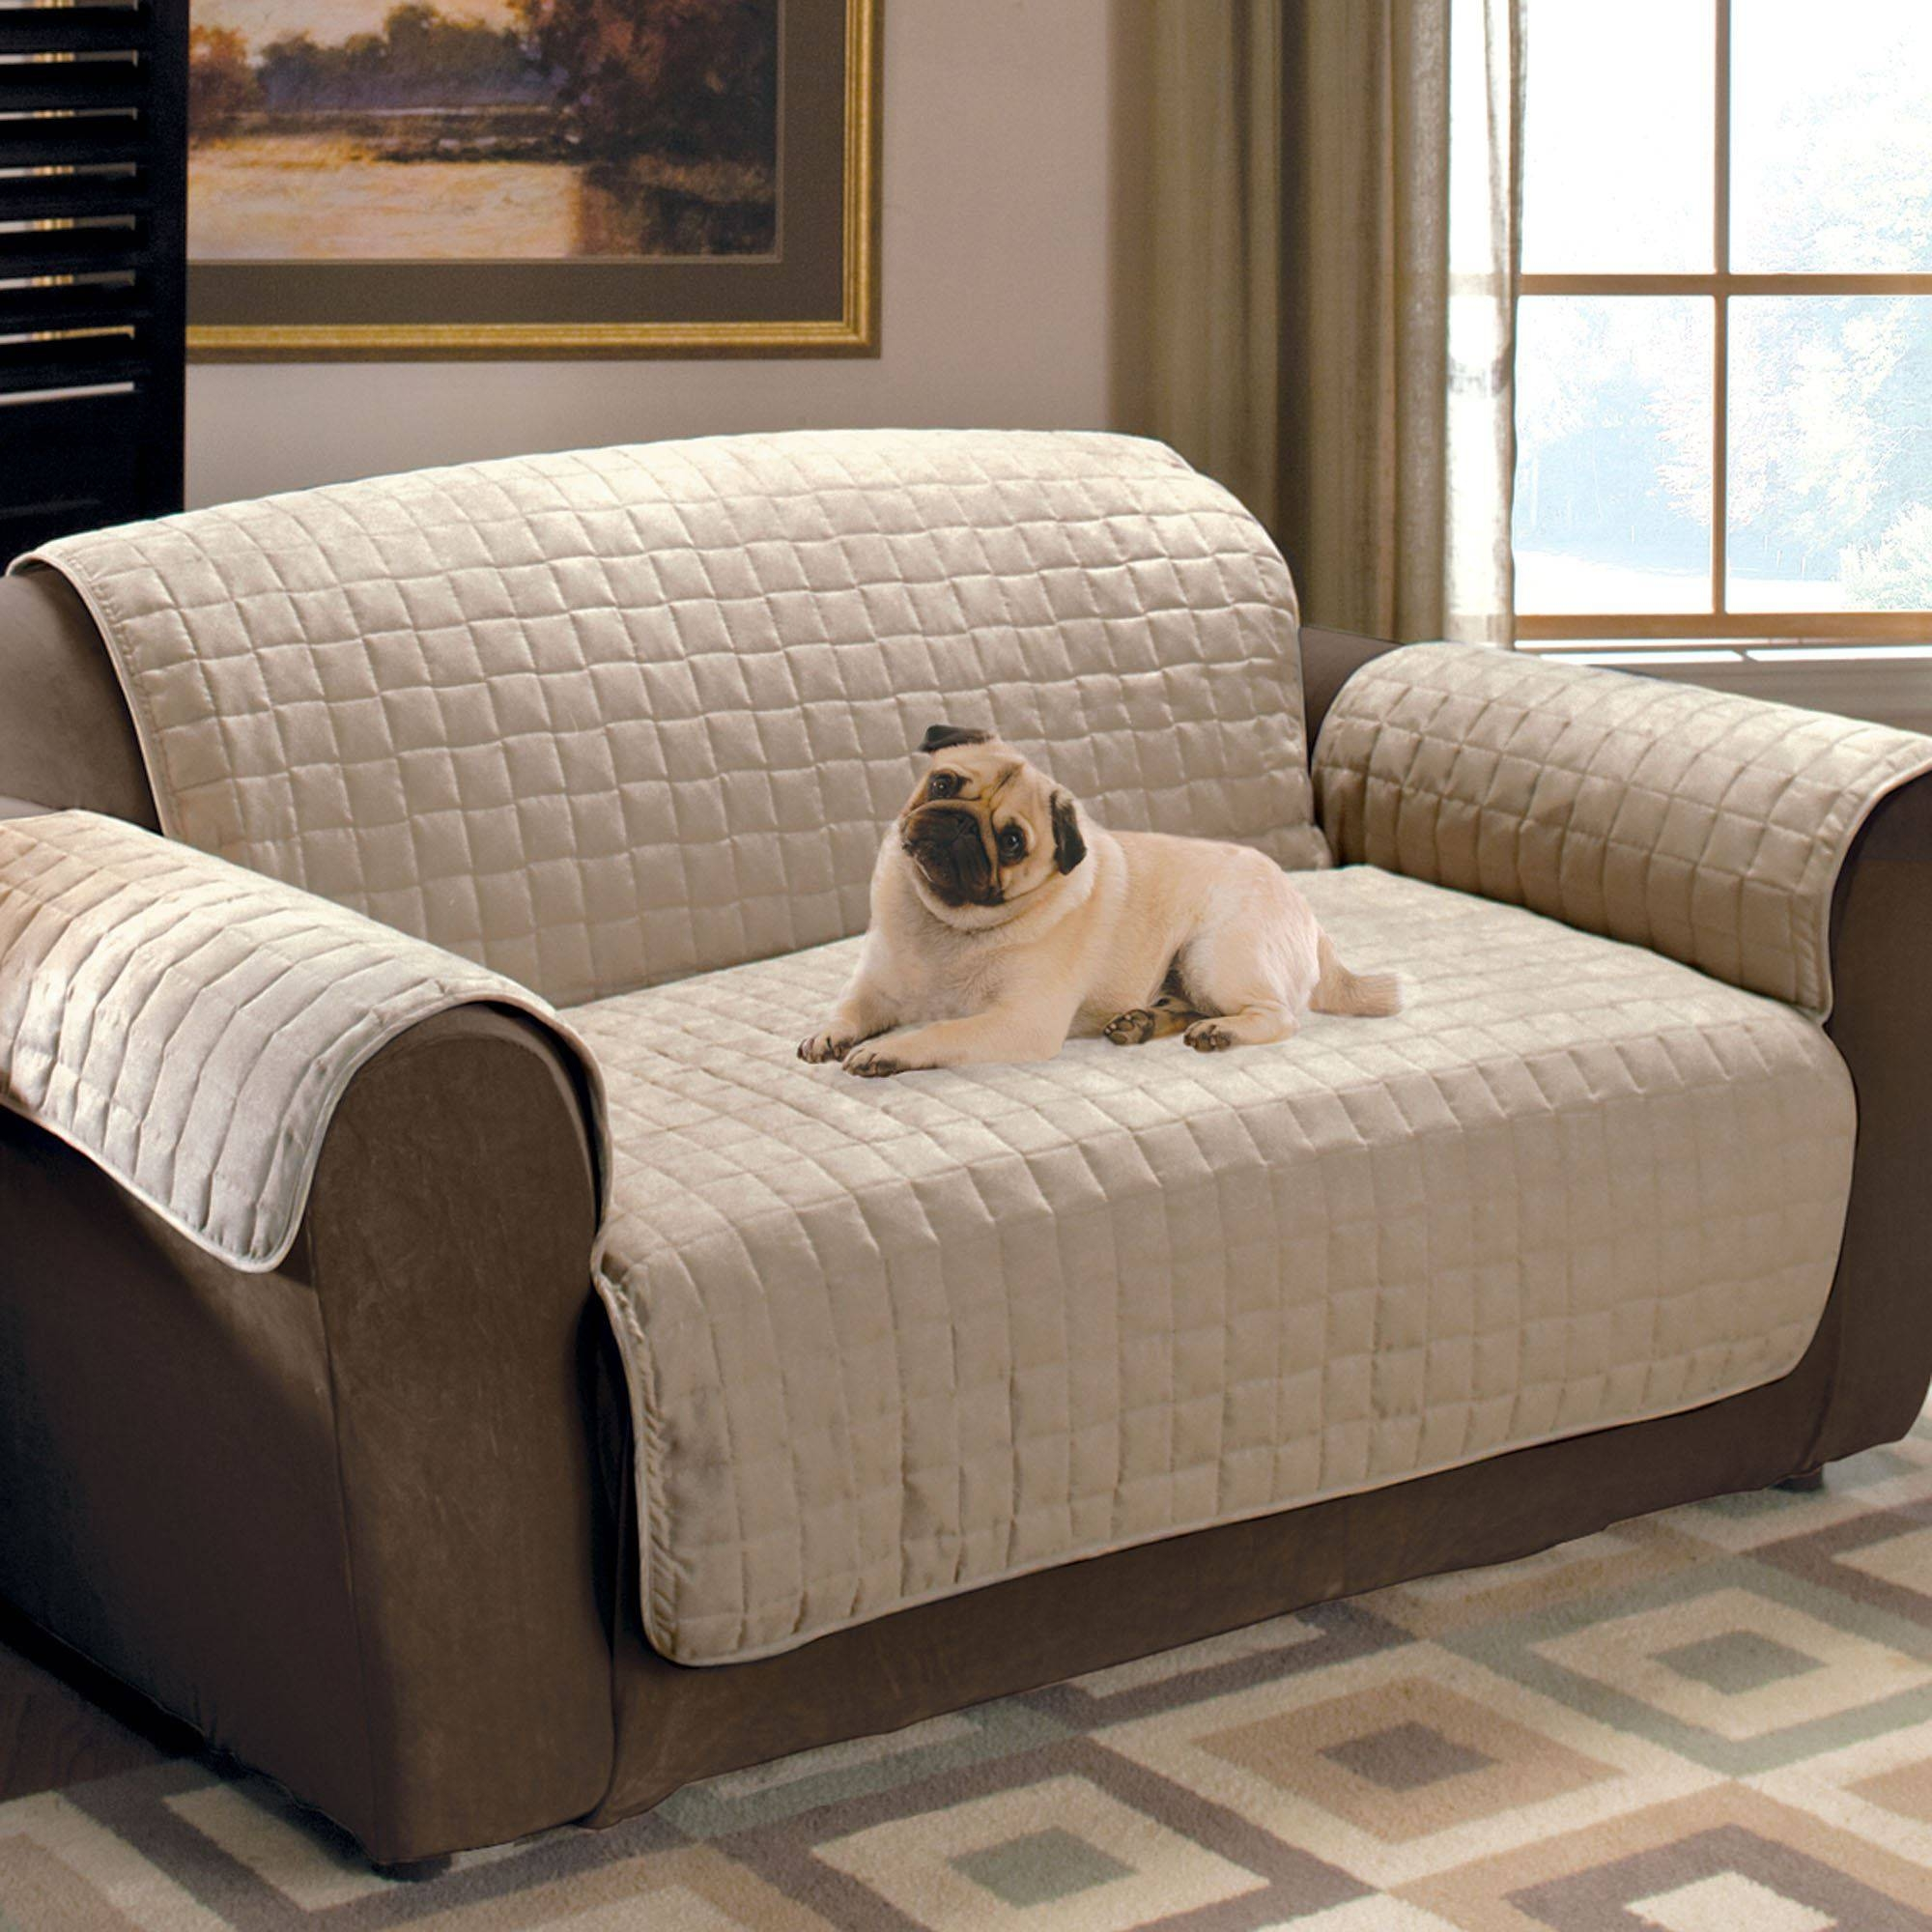 Faux Suede Pet Furniture Covers For Sofas, Loveseats, And Chairs In Sofa Settee Covers (View 10 of 30)